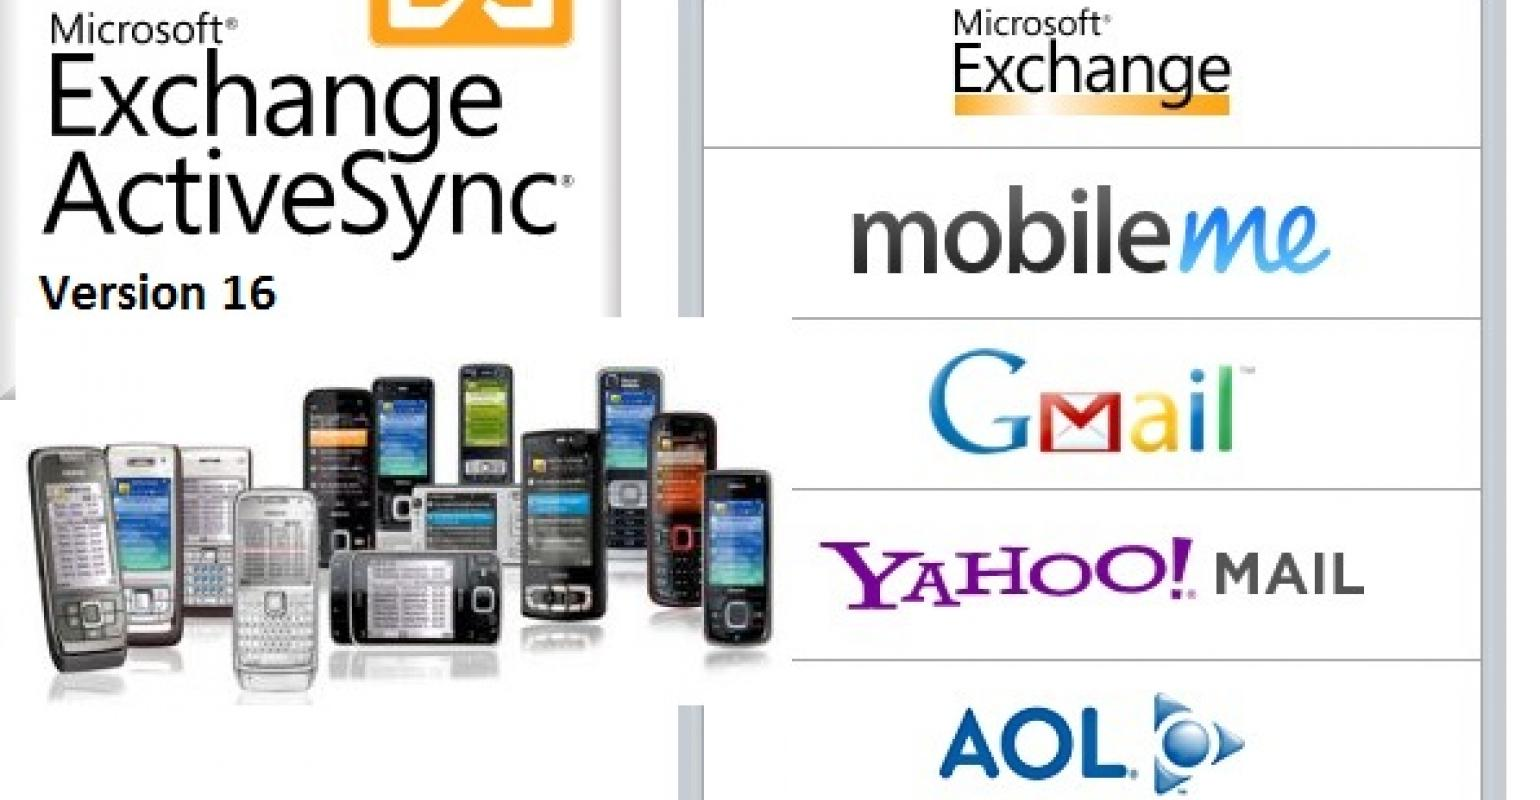 Microsoft updates Exchange ActiveSync to ensure that mobile